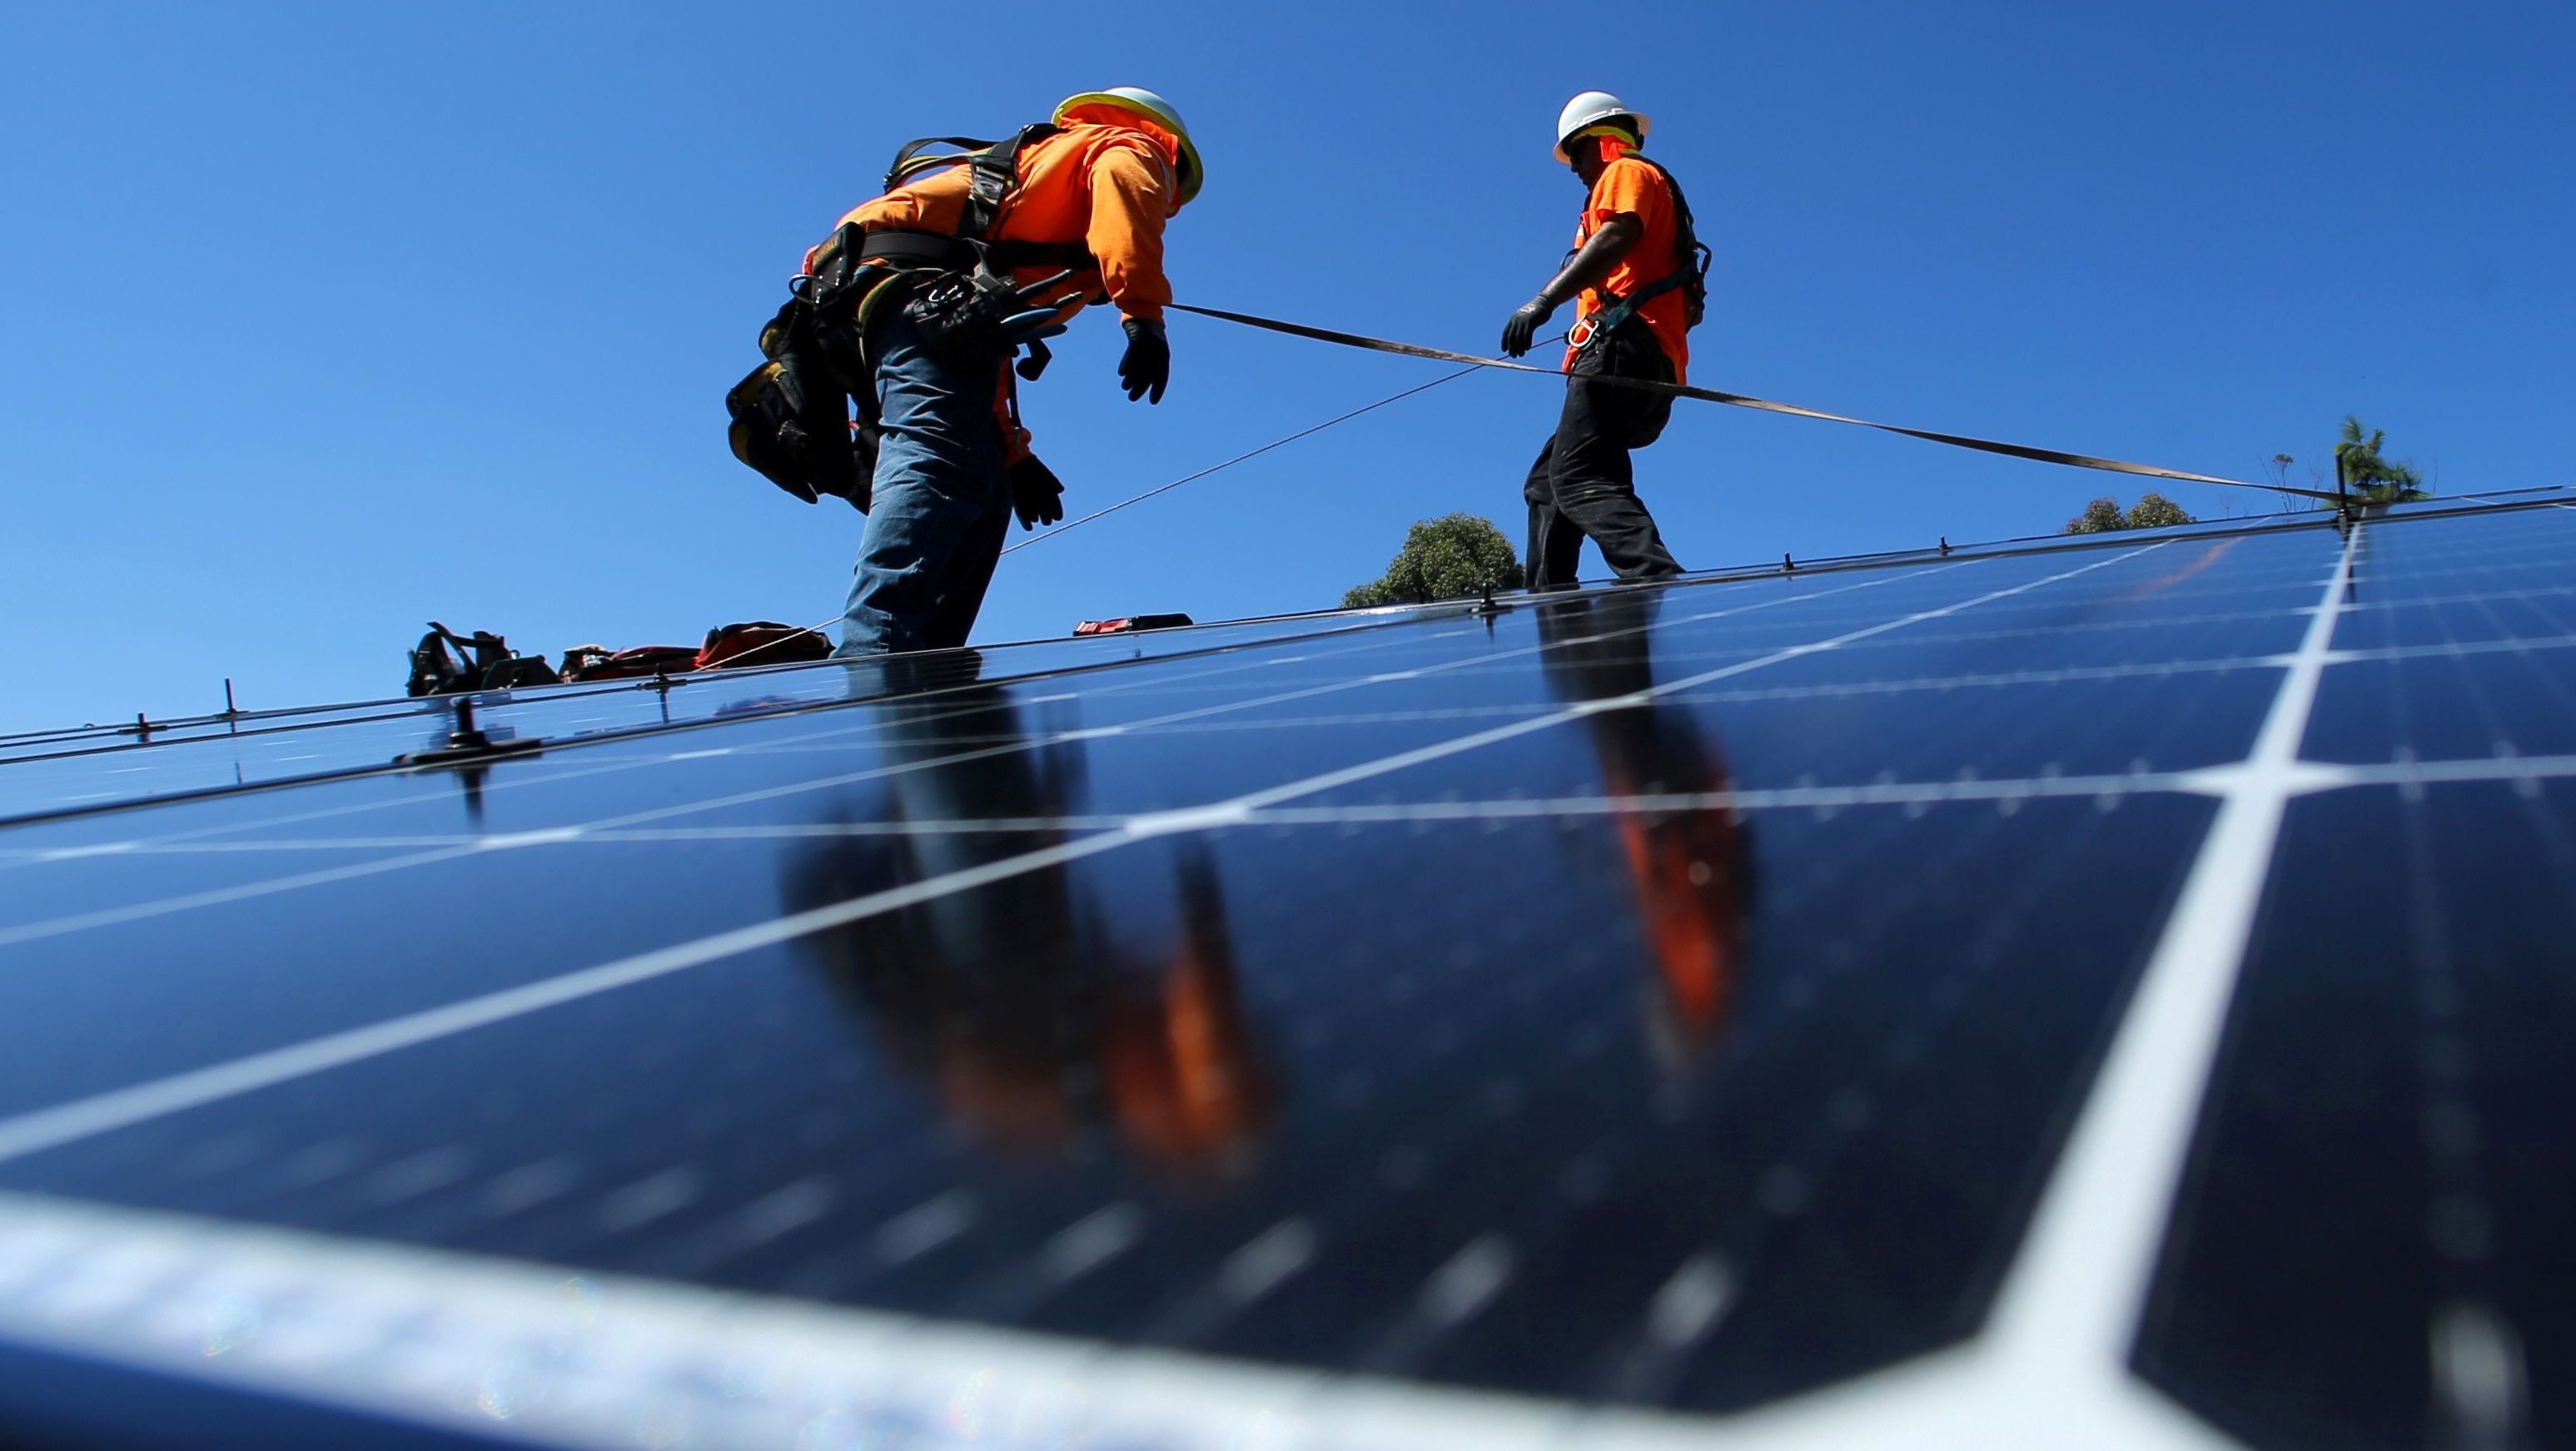 Solar installers from Baker Electric place solar panels on the roof of a residential home in Scripps Ranch, San Diego, California, U.S. October 14, 2016. Picture taken October 14, 2016.